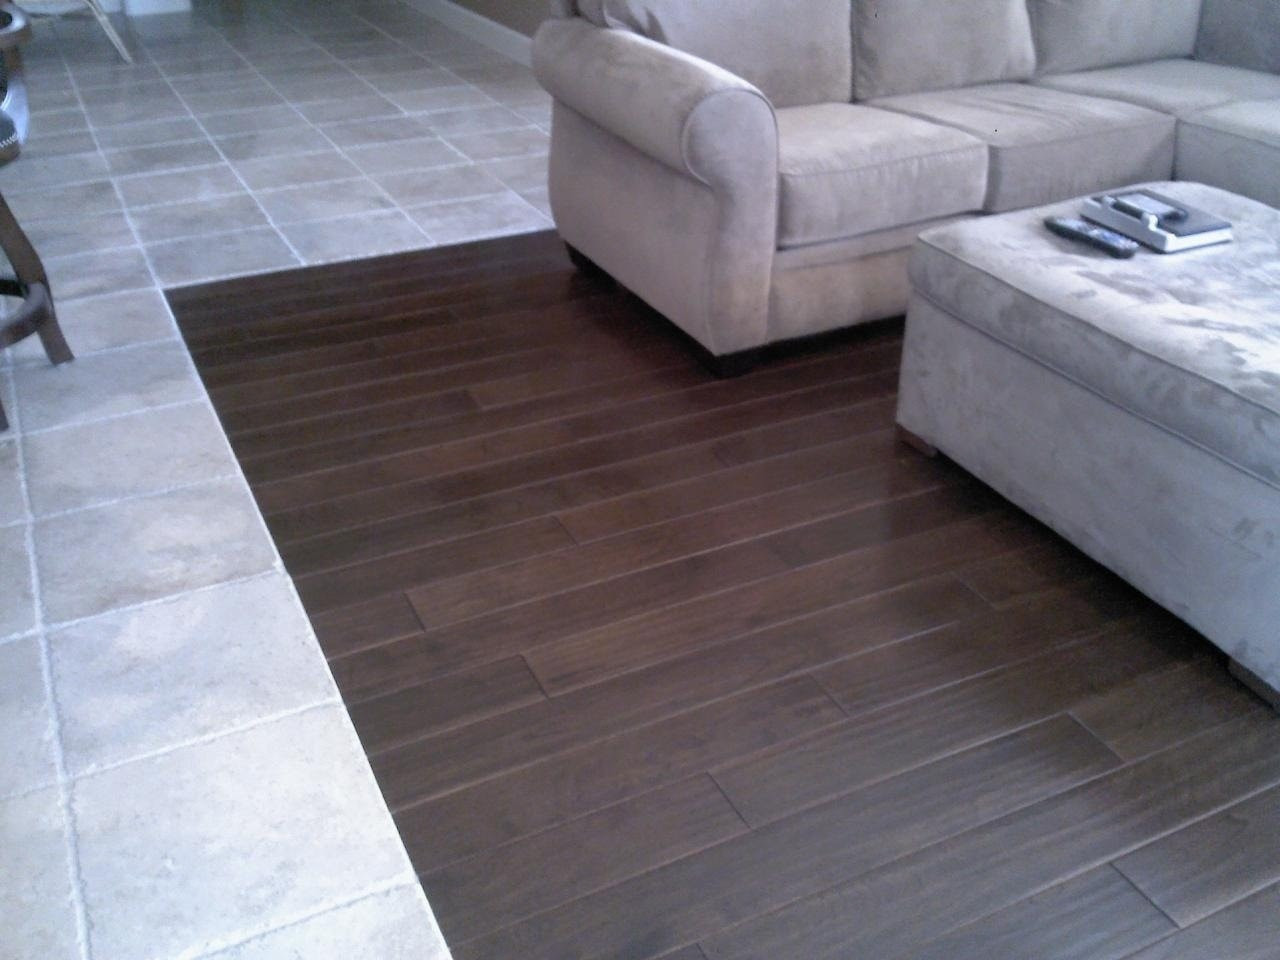 how to install hardwood floor bullnose of black hardwood floors beautiful cheapest black laminate flooring in black hardwood floors unique dark wood floor tiles dark wood floor tiles i unowinc images of